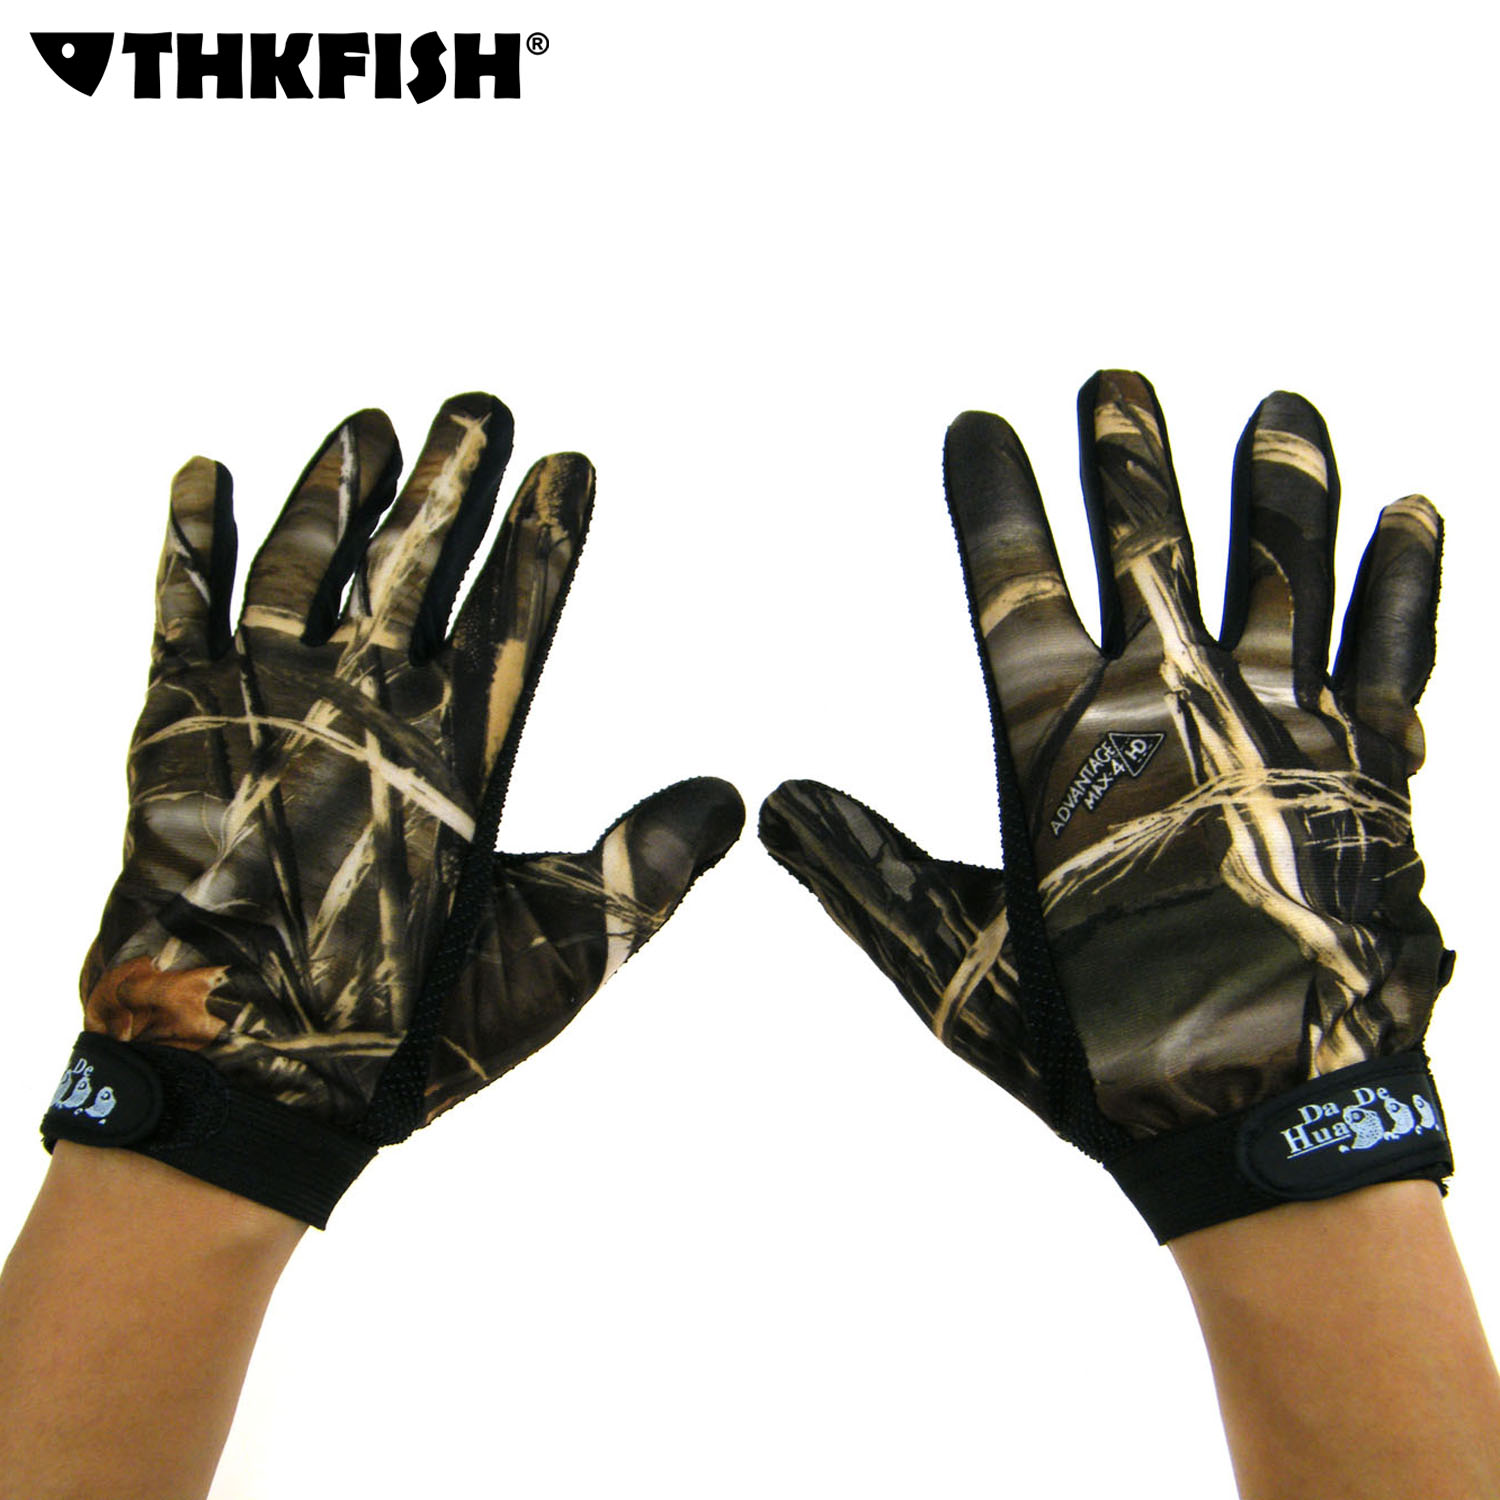 Fishing Gloves 5 Full Finger Camo camouflage Fishing Hunting Gloves Anti Slip Outdoor Sport Gloves by